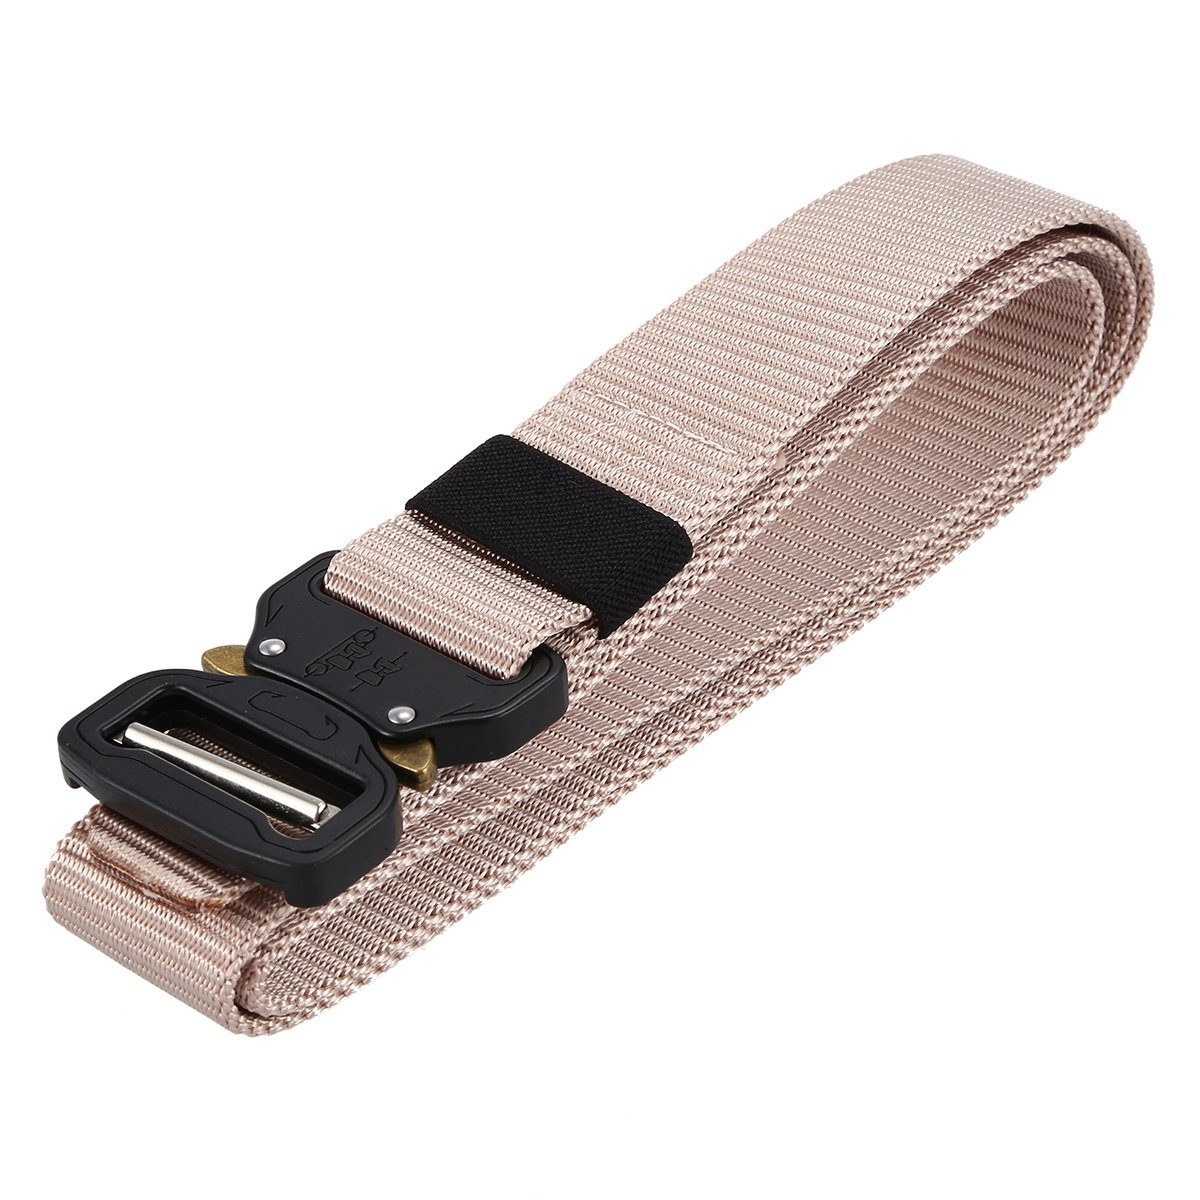 Tactical Belt Military Style Webbing Riggers Web Belt with Heavy-Duty Quick-Release Metal Buckle (1.5 Inch Wide